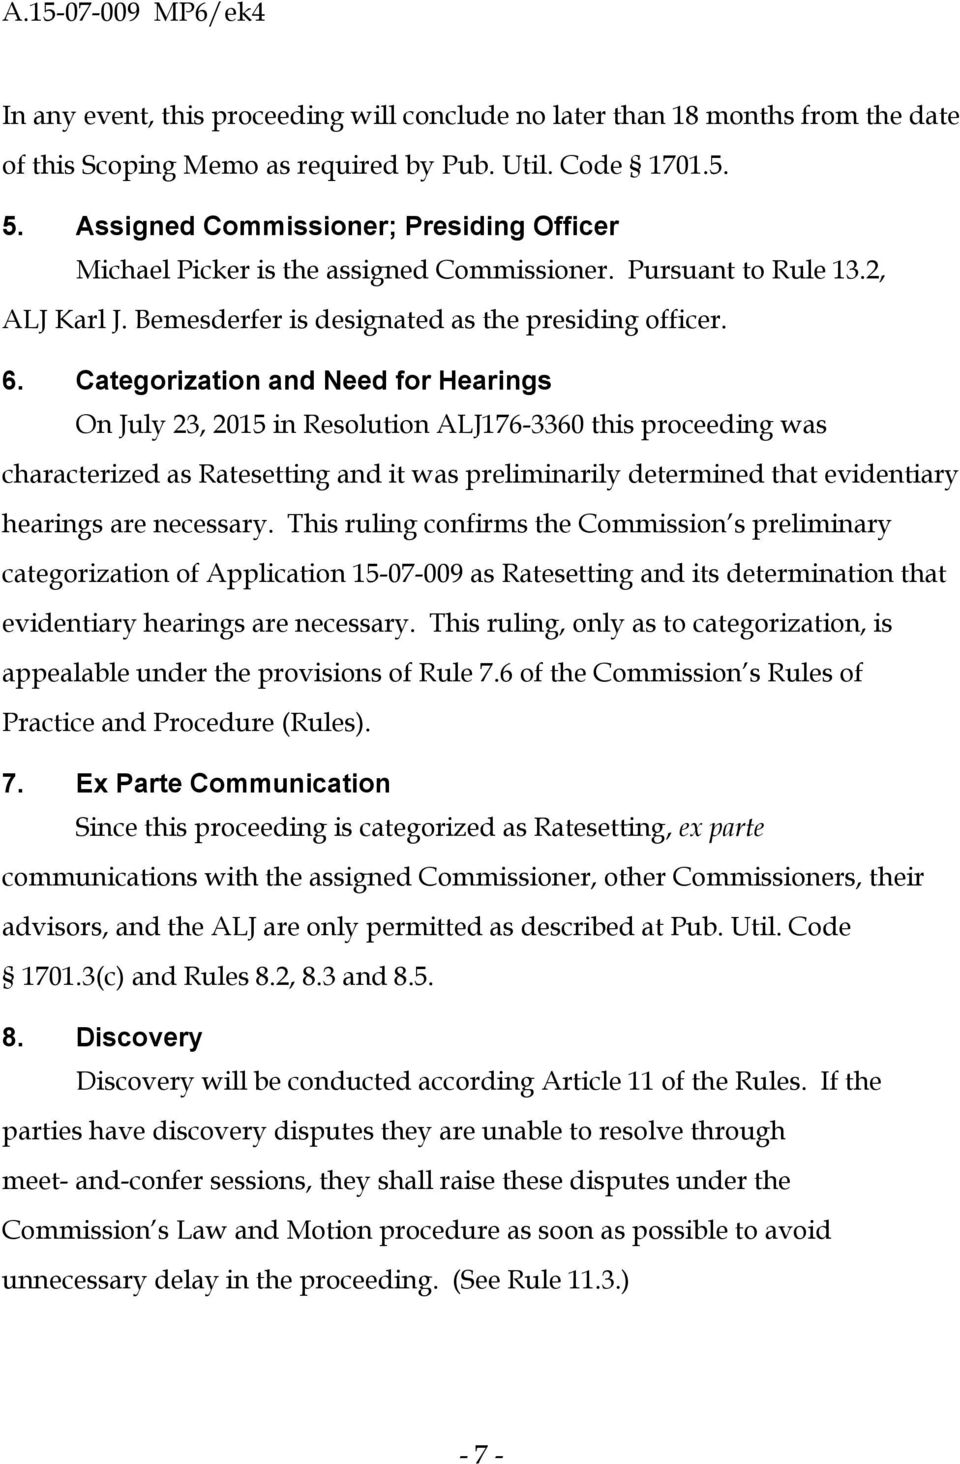 Categorization and Need for Hearings On July 23, 2015 in Resolution ALJ176-3360 this proceeding was characterized as Ratesetting and it was preliminarily determined that evidentiary hearings are